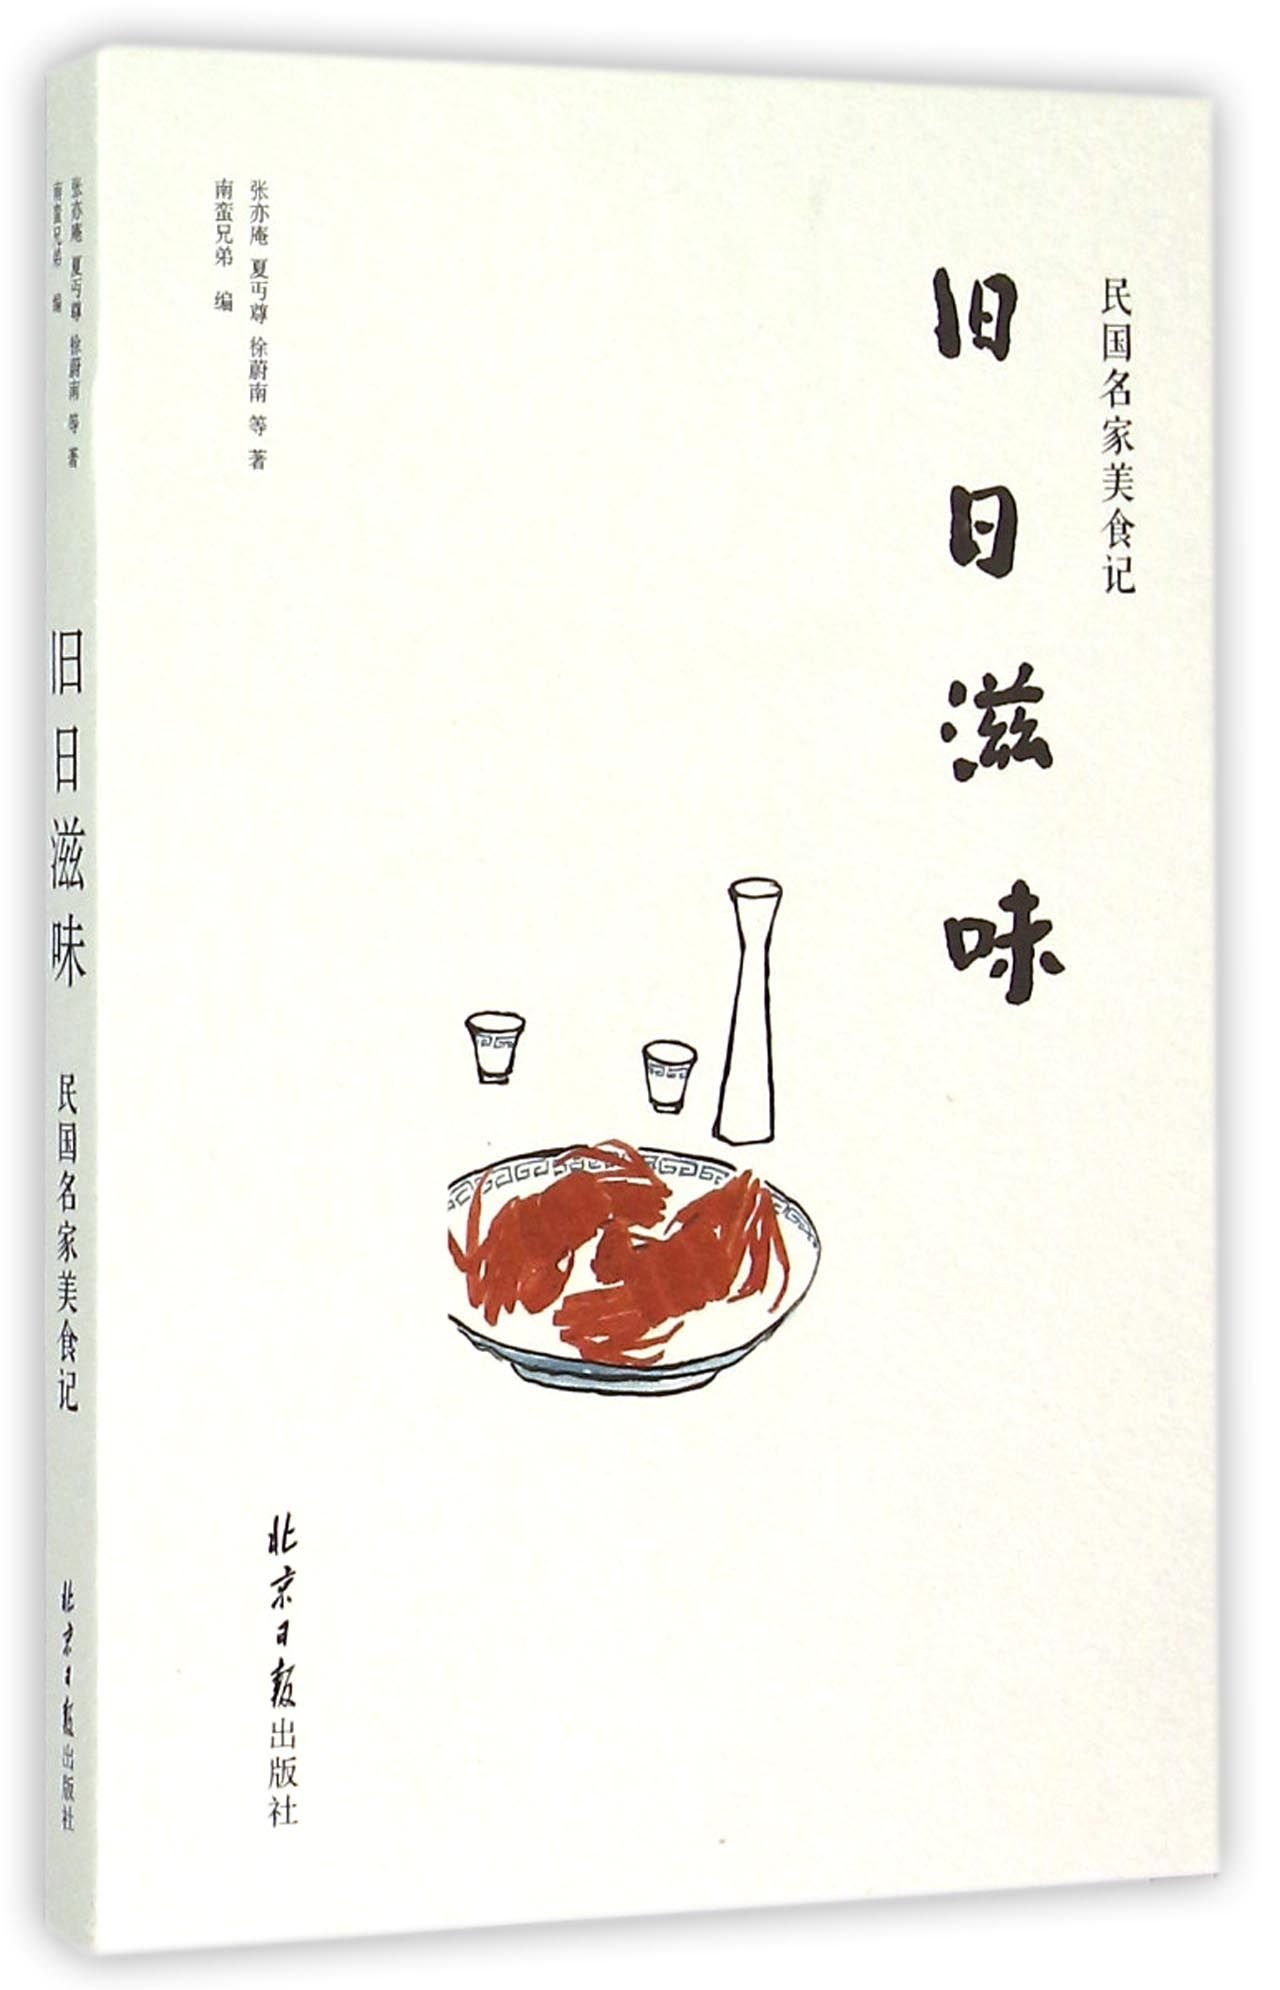 The Republic of China's Celebrities on Food: The Tastes in the Old Days (Chinese Edition) PDF